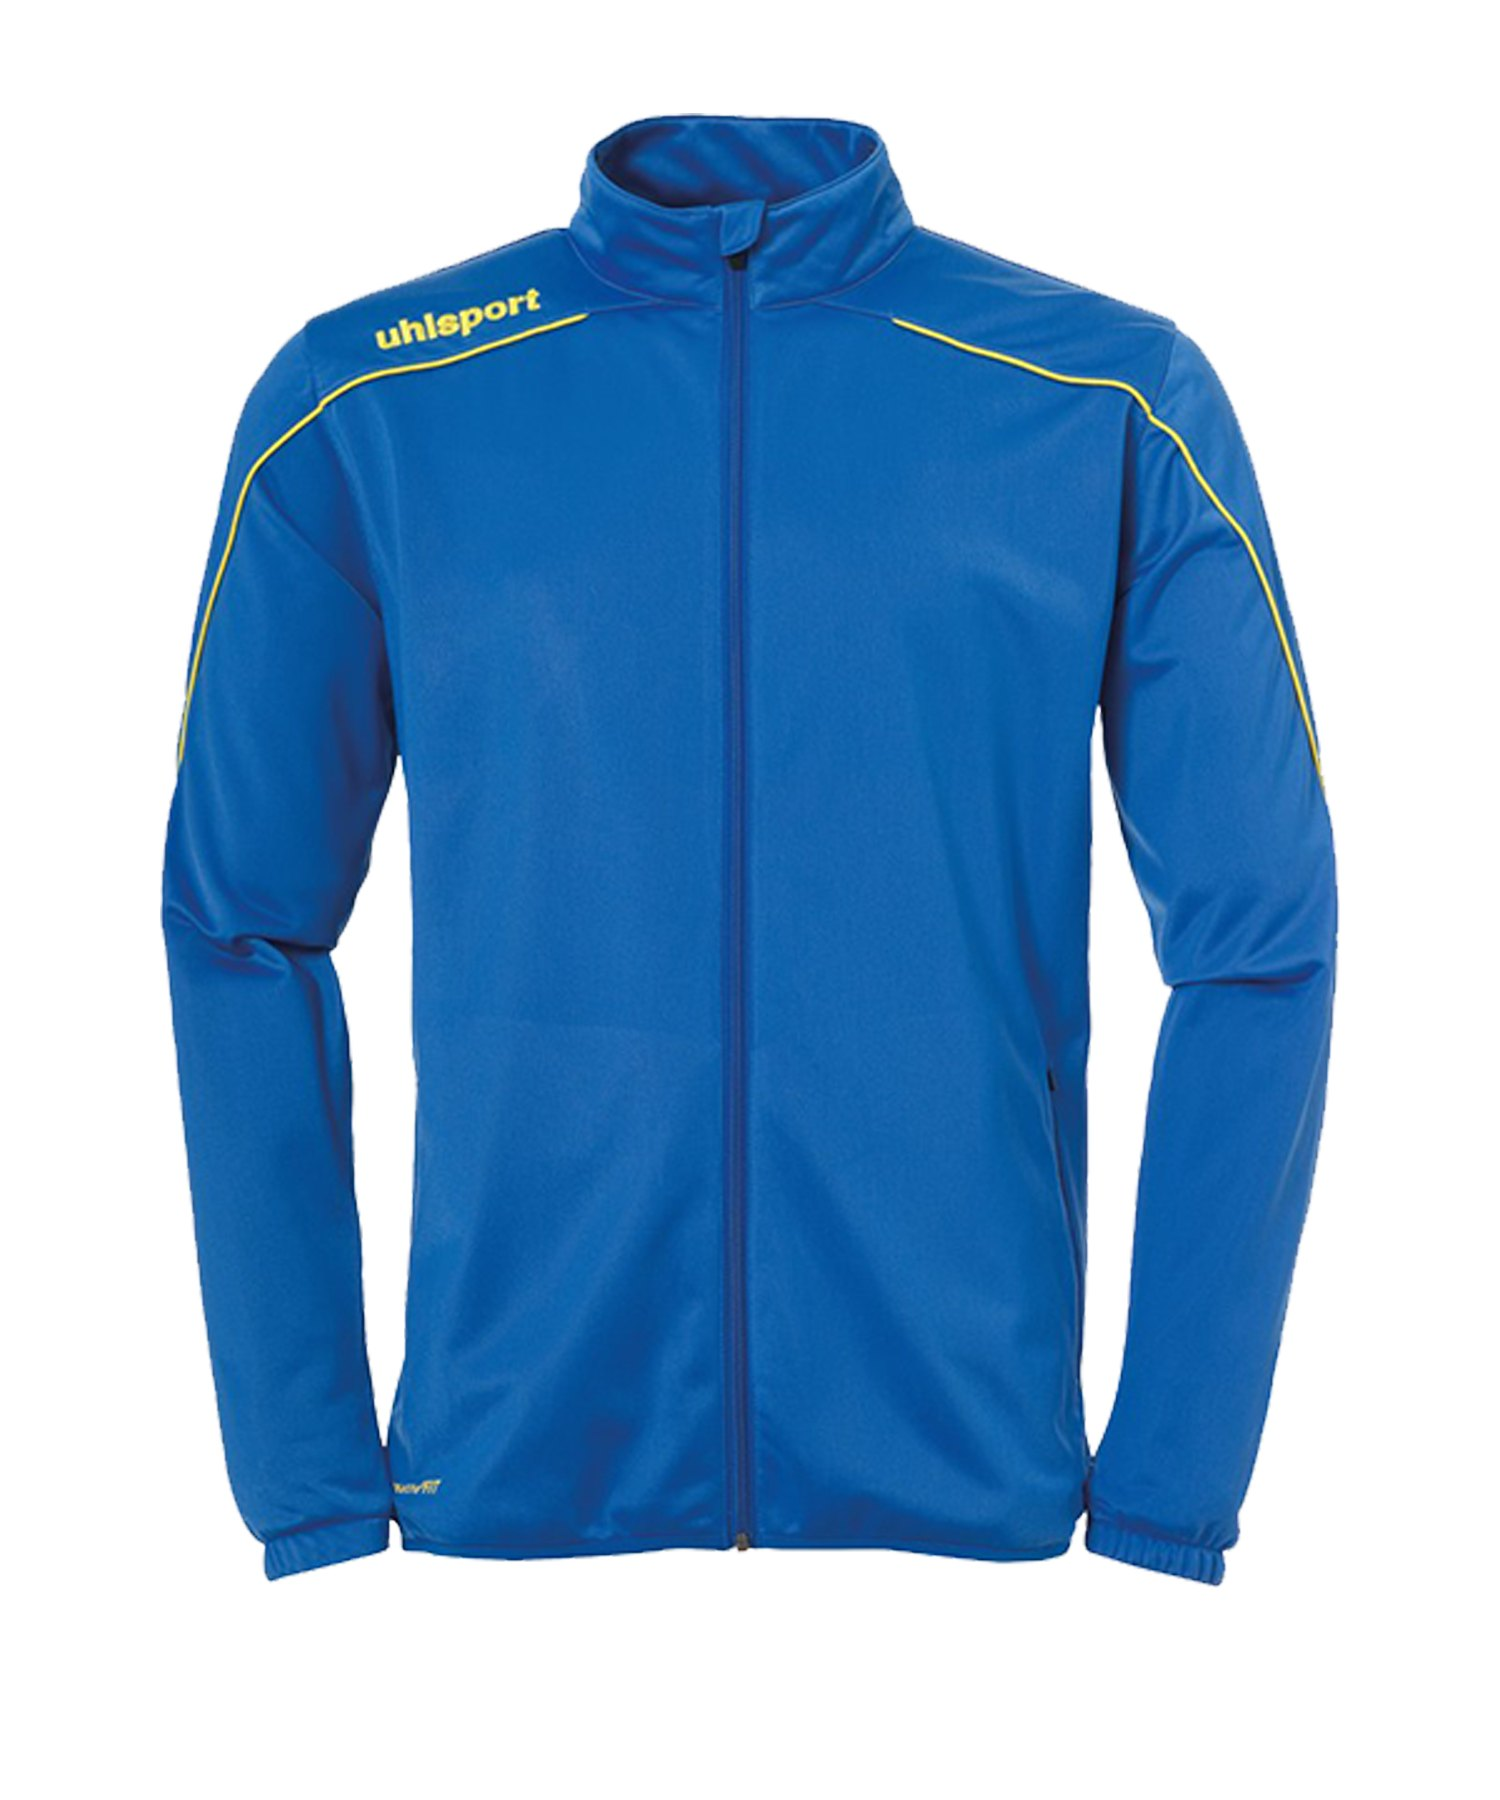 Uhlsport Stream 22 Trainingsjacke Classic Kids F14 - Blau